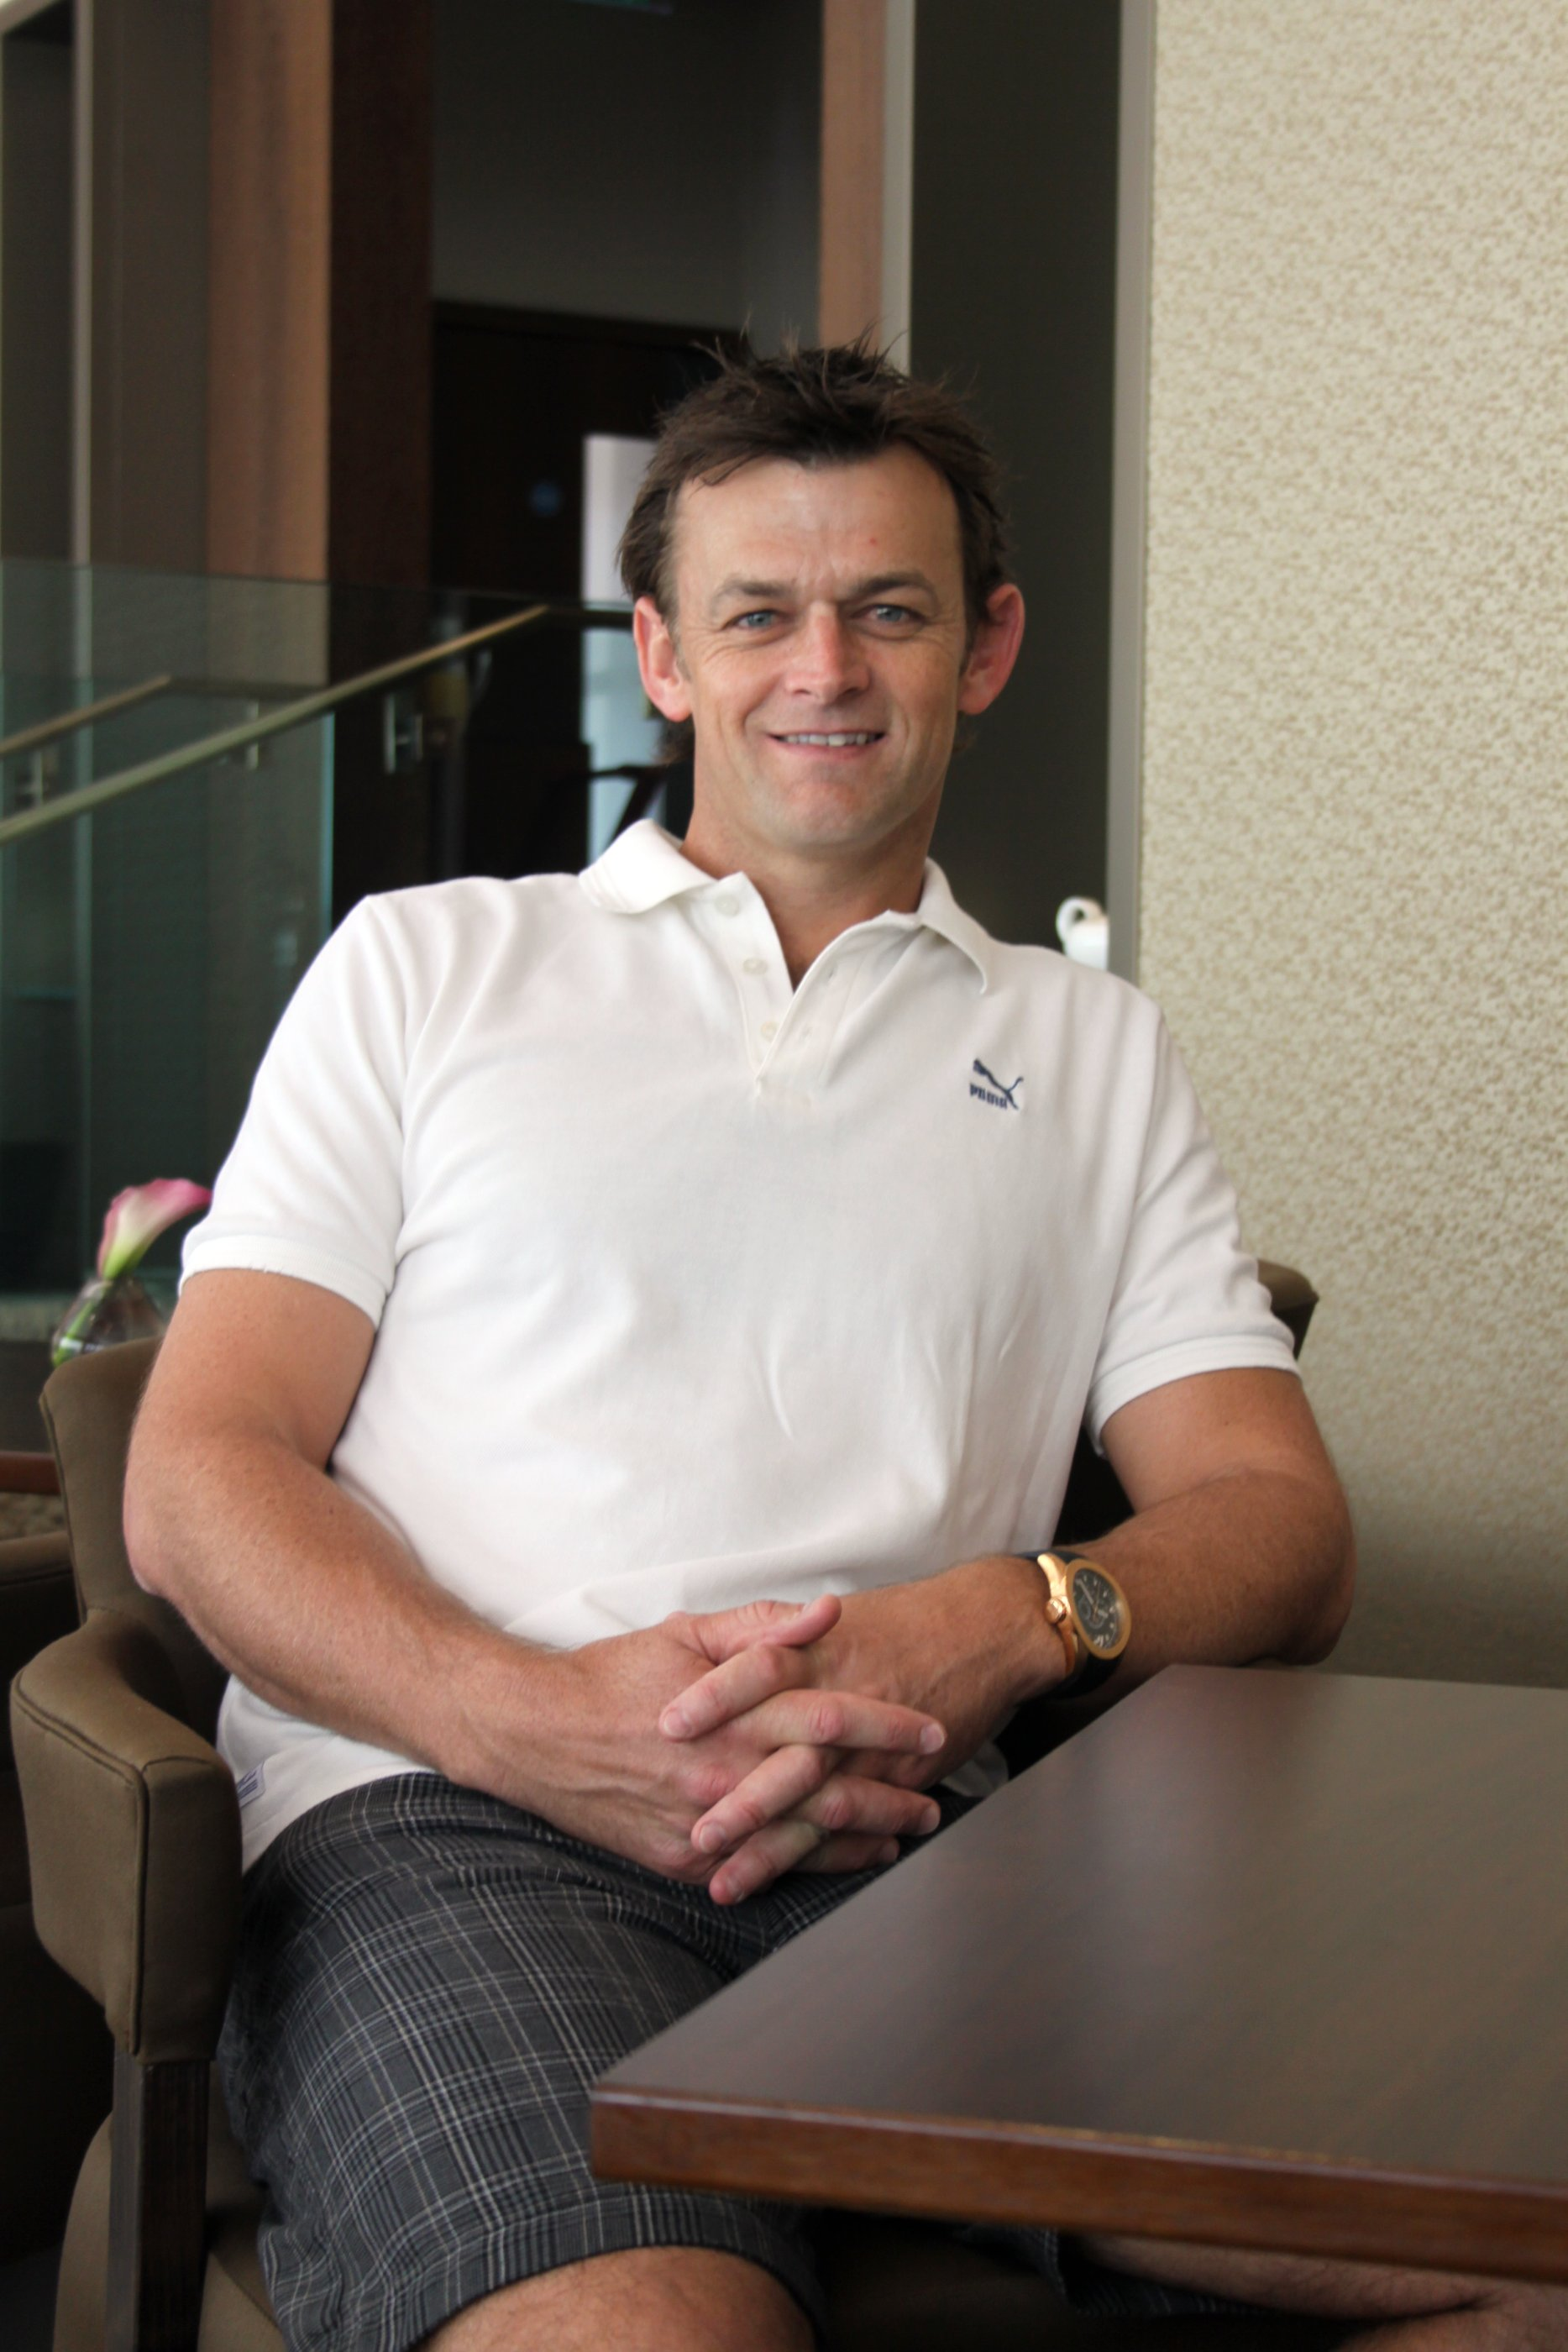 The 48-year old son of father Stanley Gilchrist and mother June Gilchrist Adam Gilchrist in 2020 photo. Adam Gilchrist earned a  million dollar salary - leaving the net worth at 3.5 million in 2020